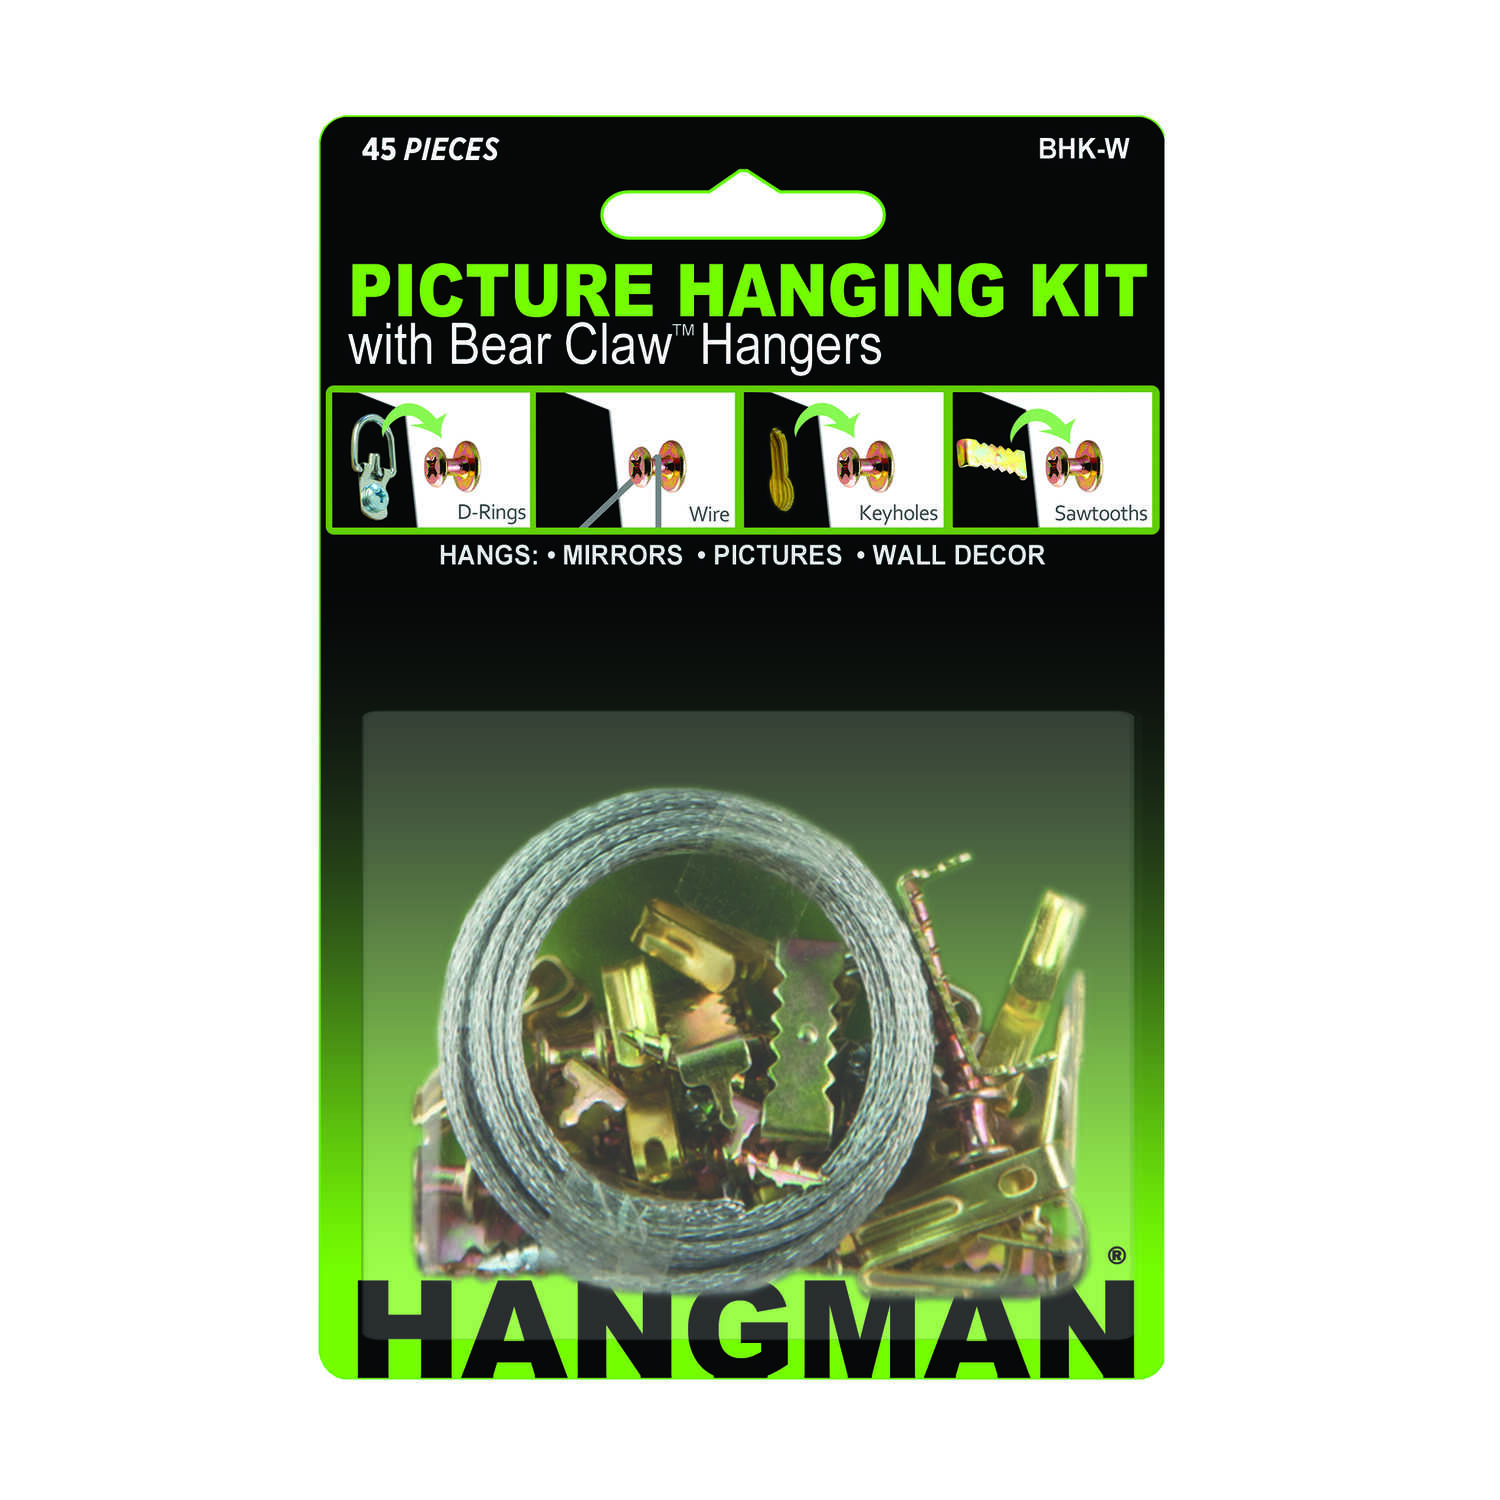 Hangman  Hanger  100 lb. Picture Hanging Kit  45 pc.